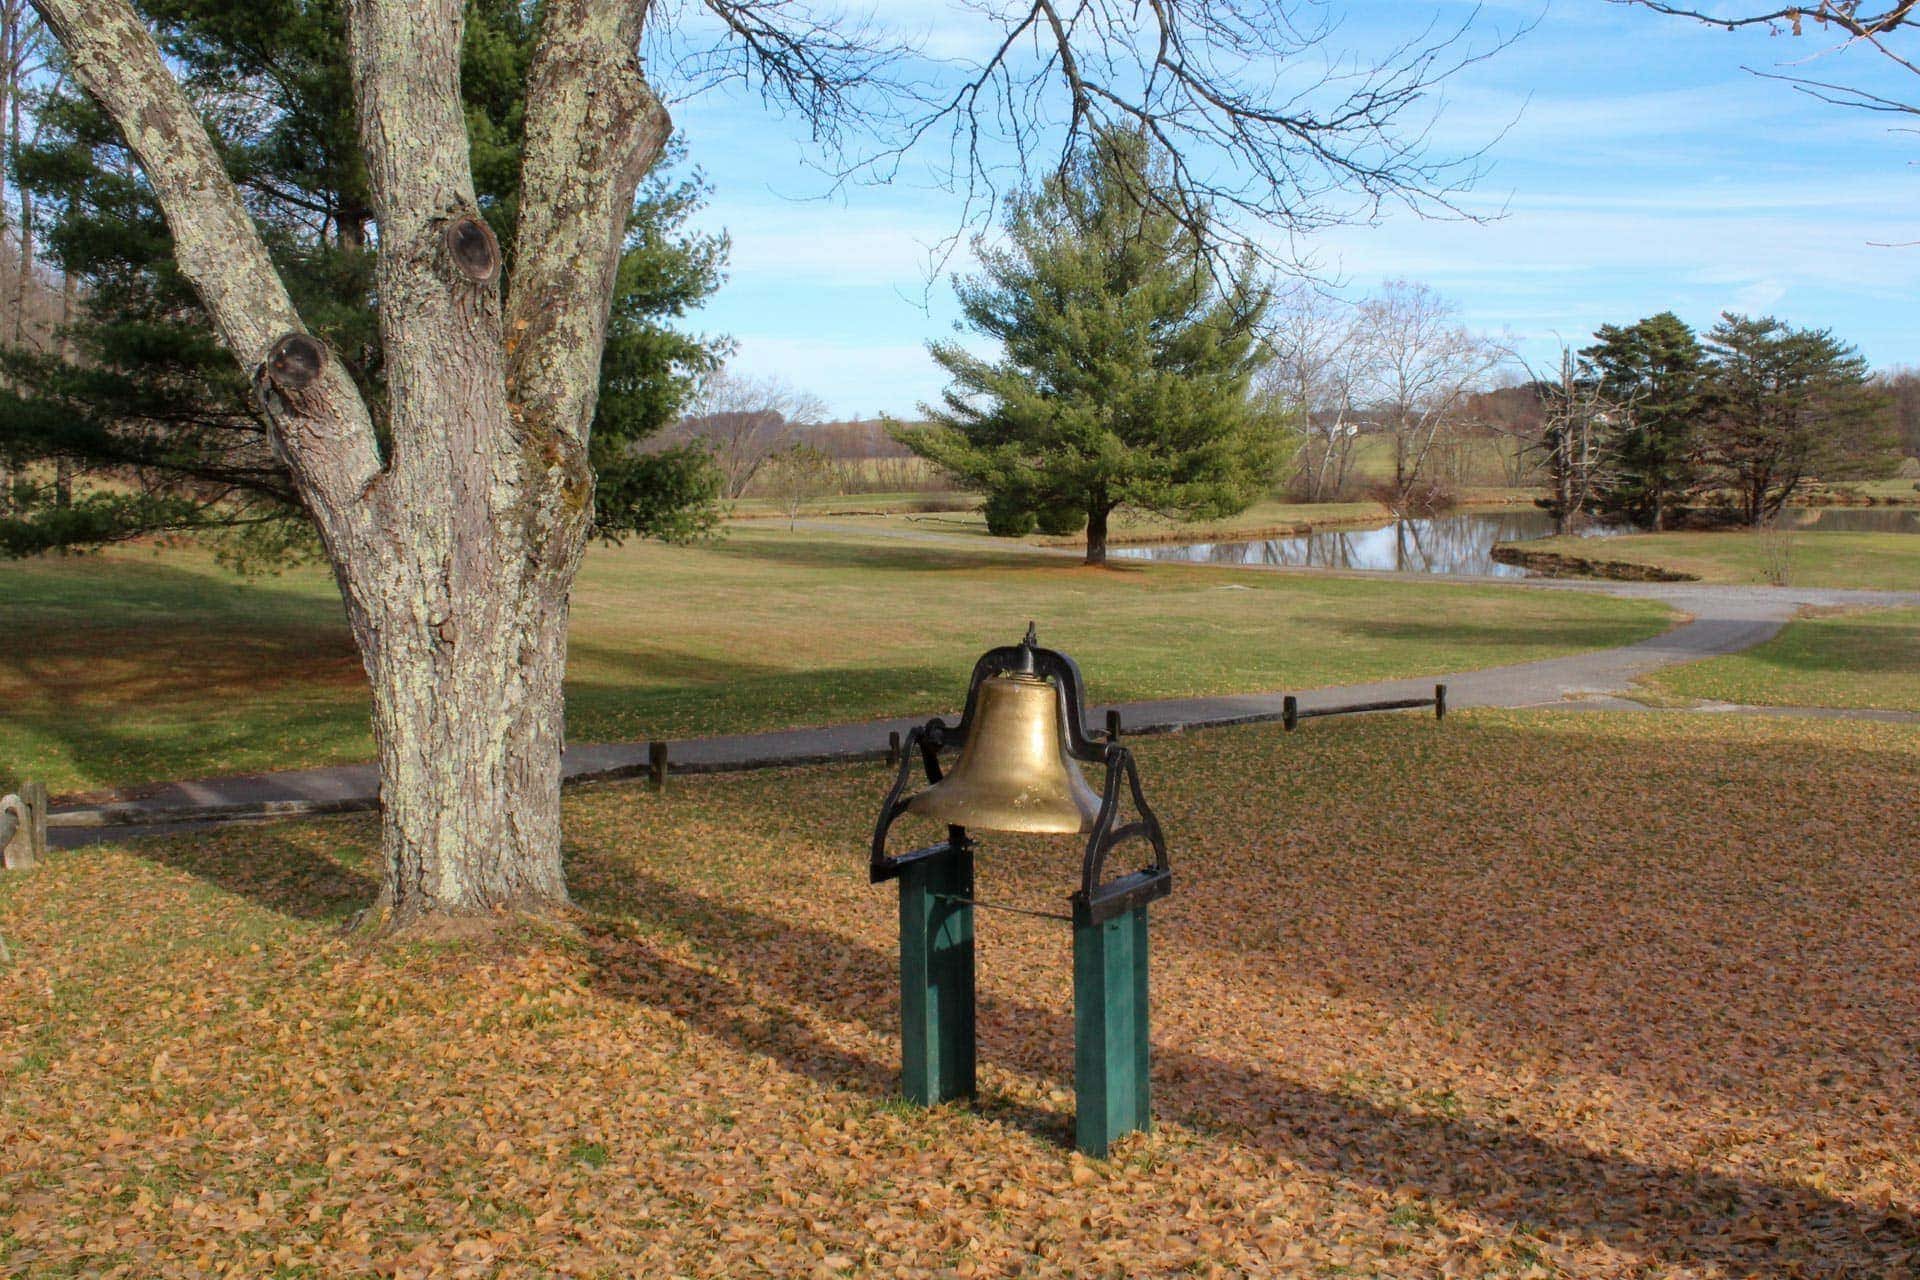 Ringing in a new era: Buckhannon's nine-hole golf course is back as the Golden Bell Golf Course